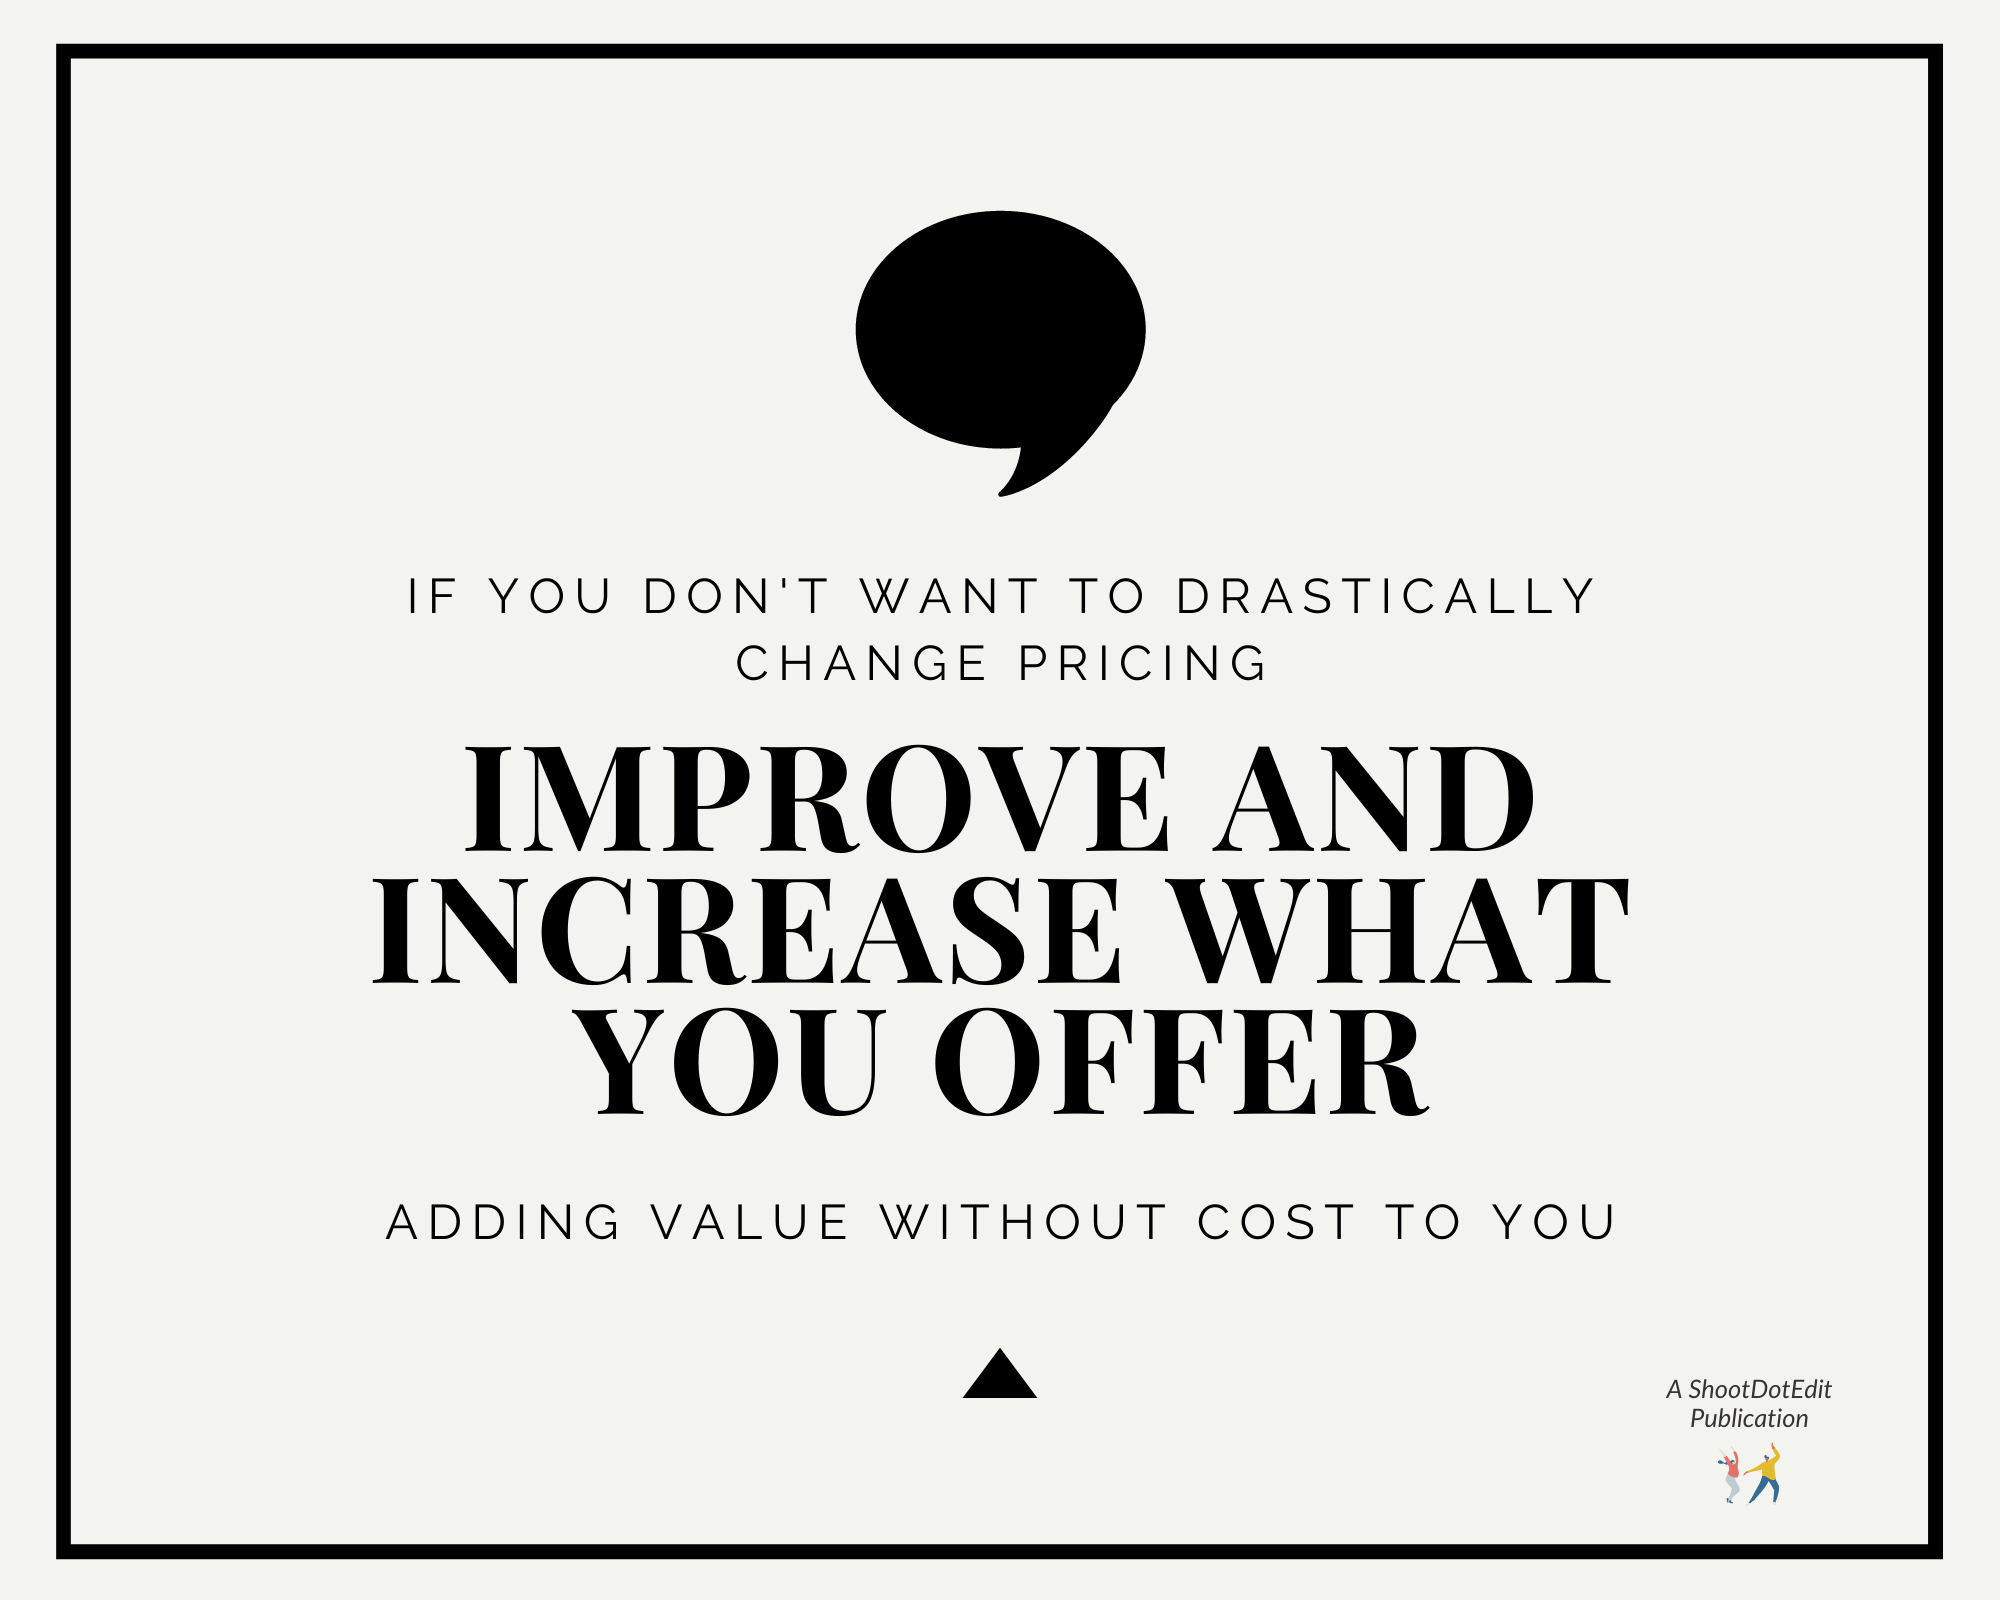 Graphic - If you don't want to drastically change pricing, improve & increase what your offer adding value without cost to you